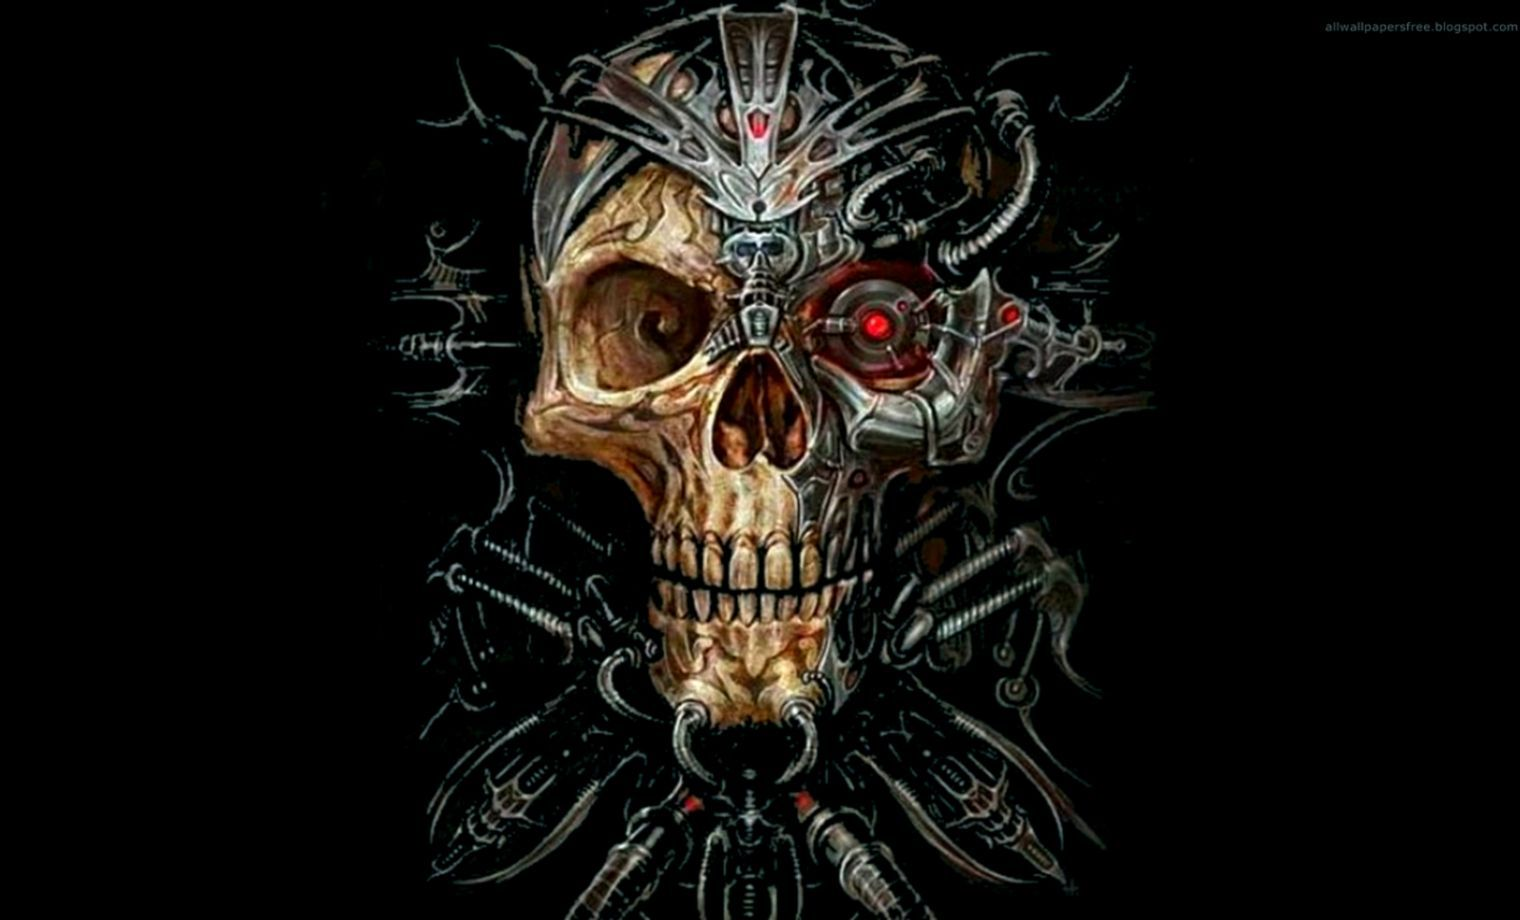 Skull animation and art hd quality google search better than zombi free hd terror skull wallpapers resolution filesize kb added on may tagged zombi voltagebd Images